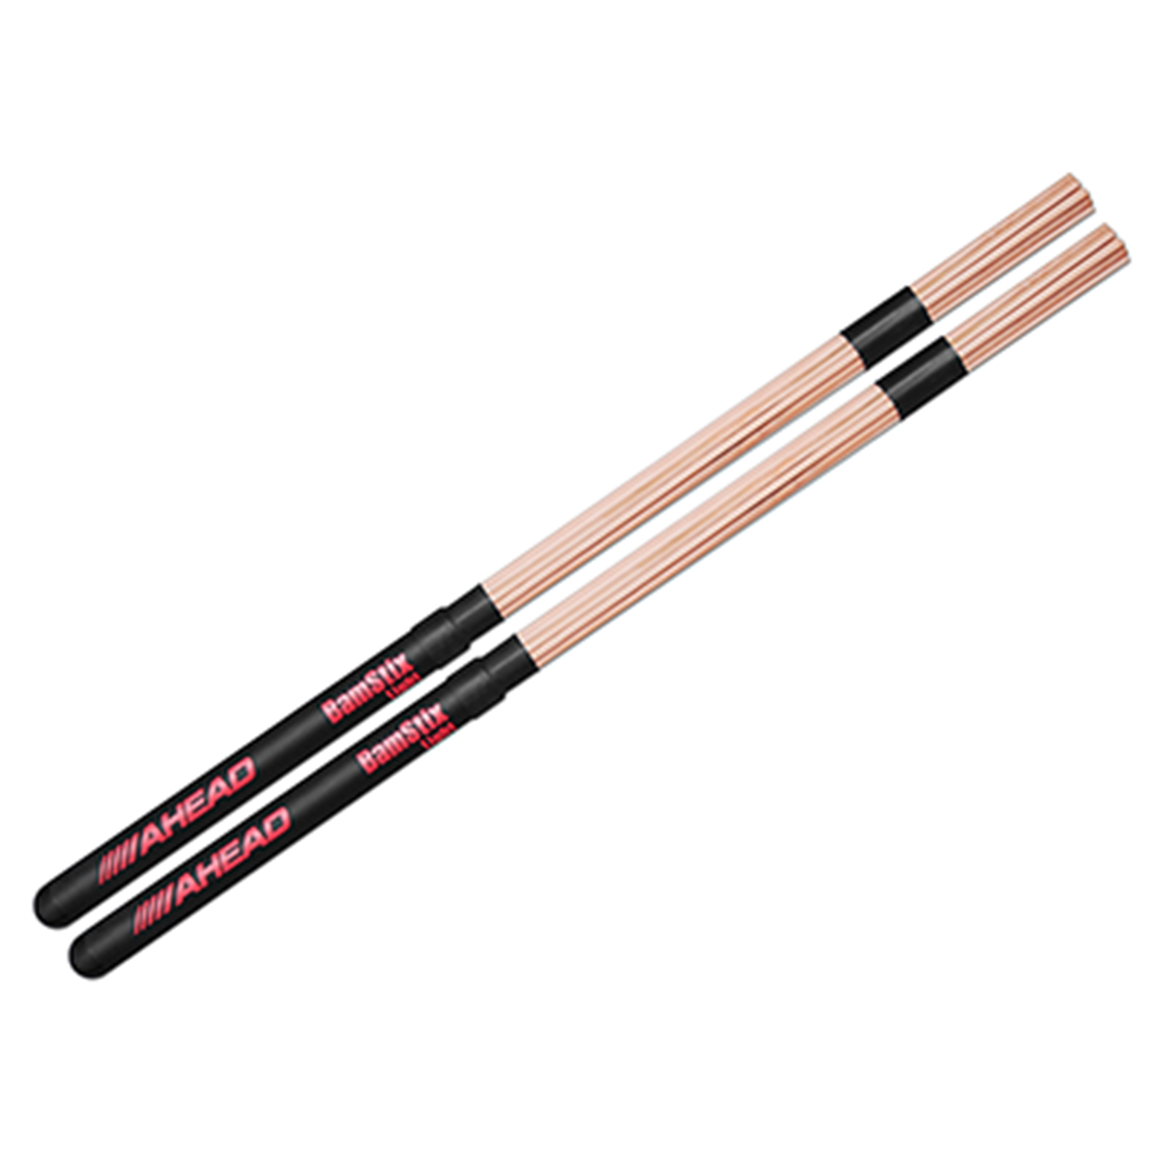 AHEAD BSL BamStix Light, 15 Rod Bundled Bamboo